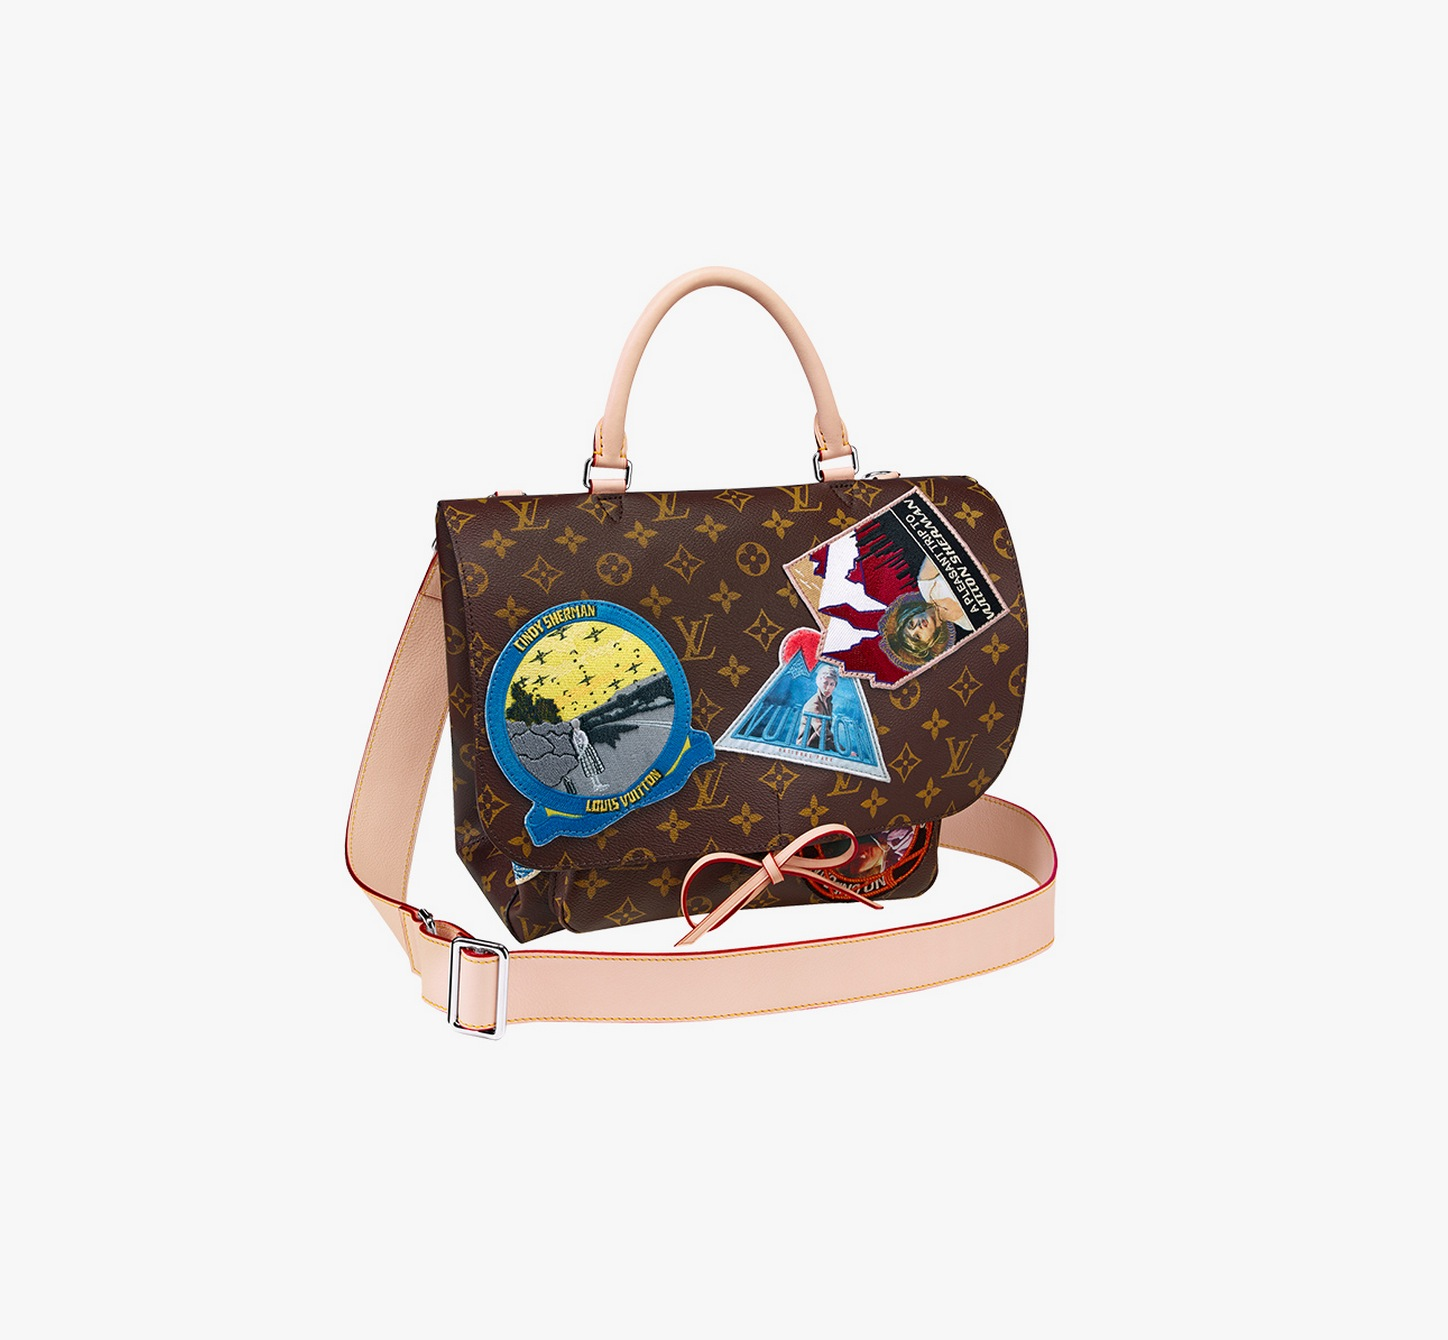 Louis Vuitton Camera messenger by Cindy Sherman